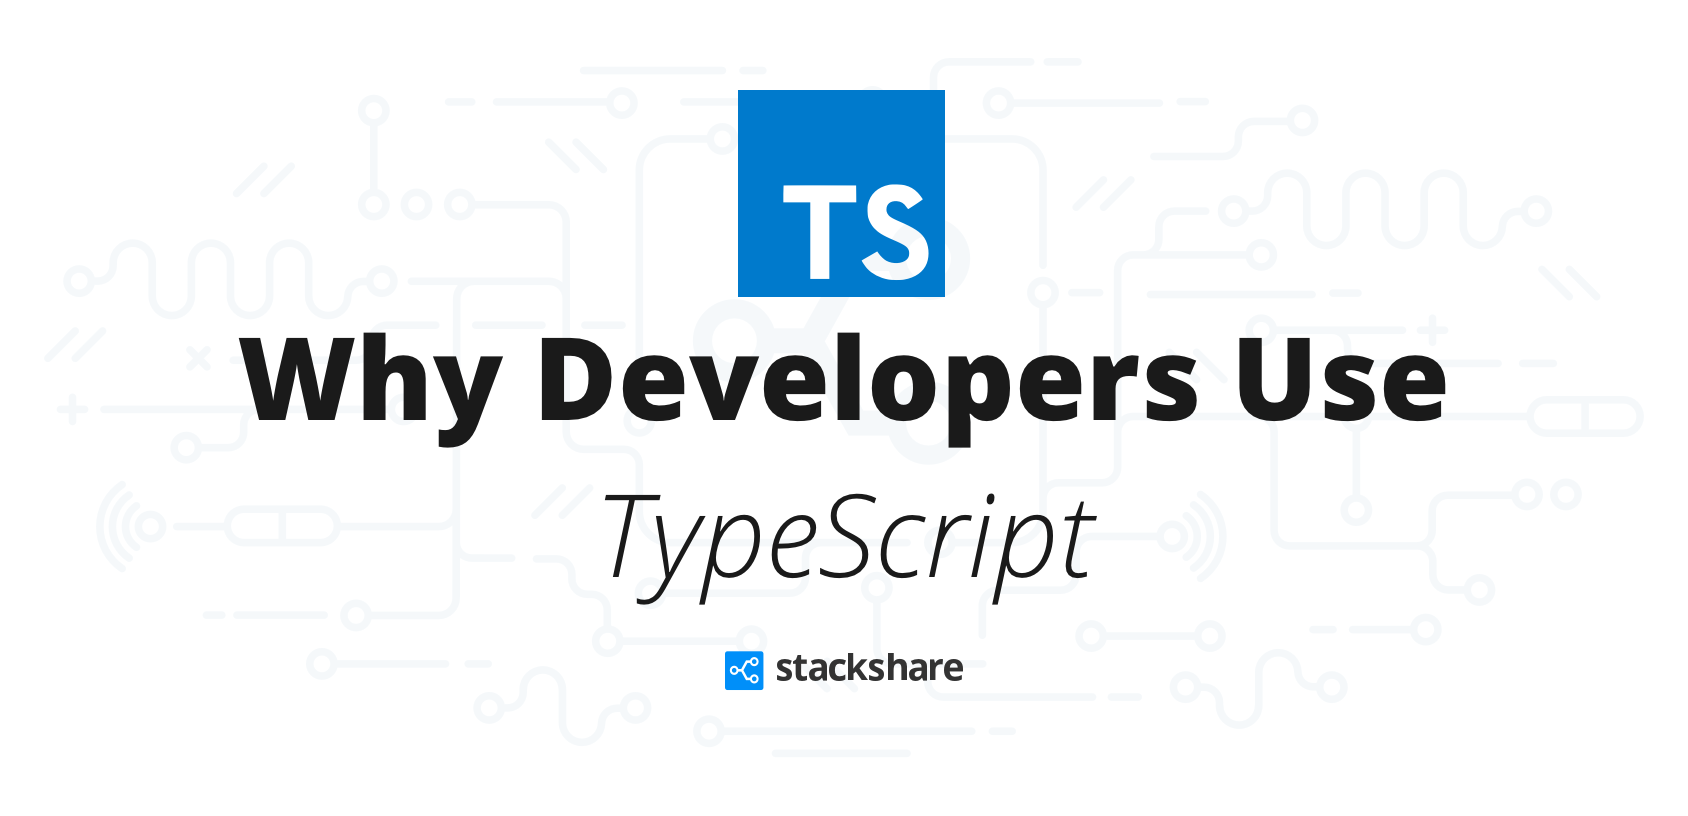 Why Devs Use Typescript In 2019